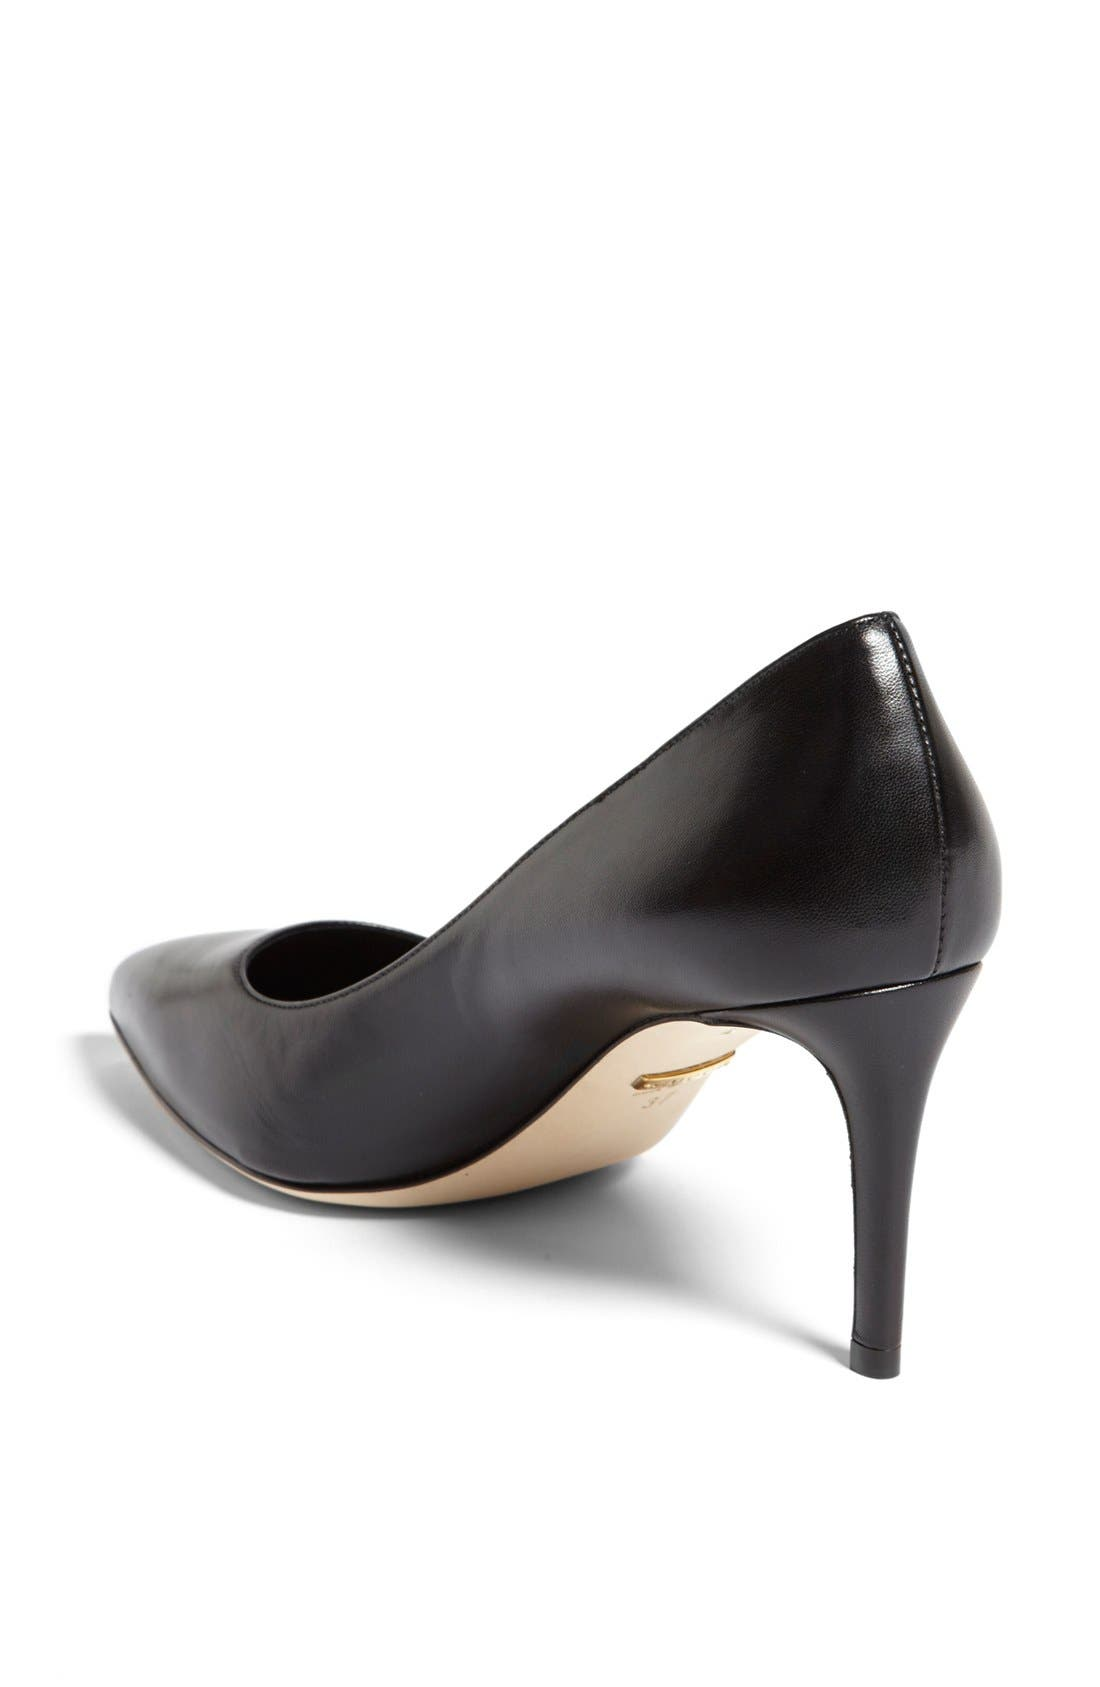 Alternate Image 2  - Gucci 'Brooke' Pointed Toe Pump